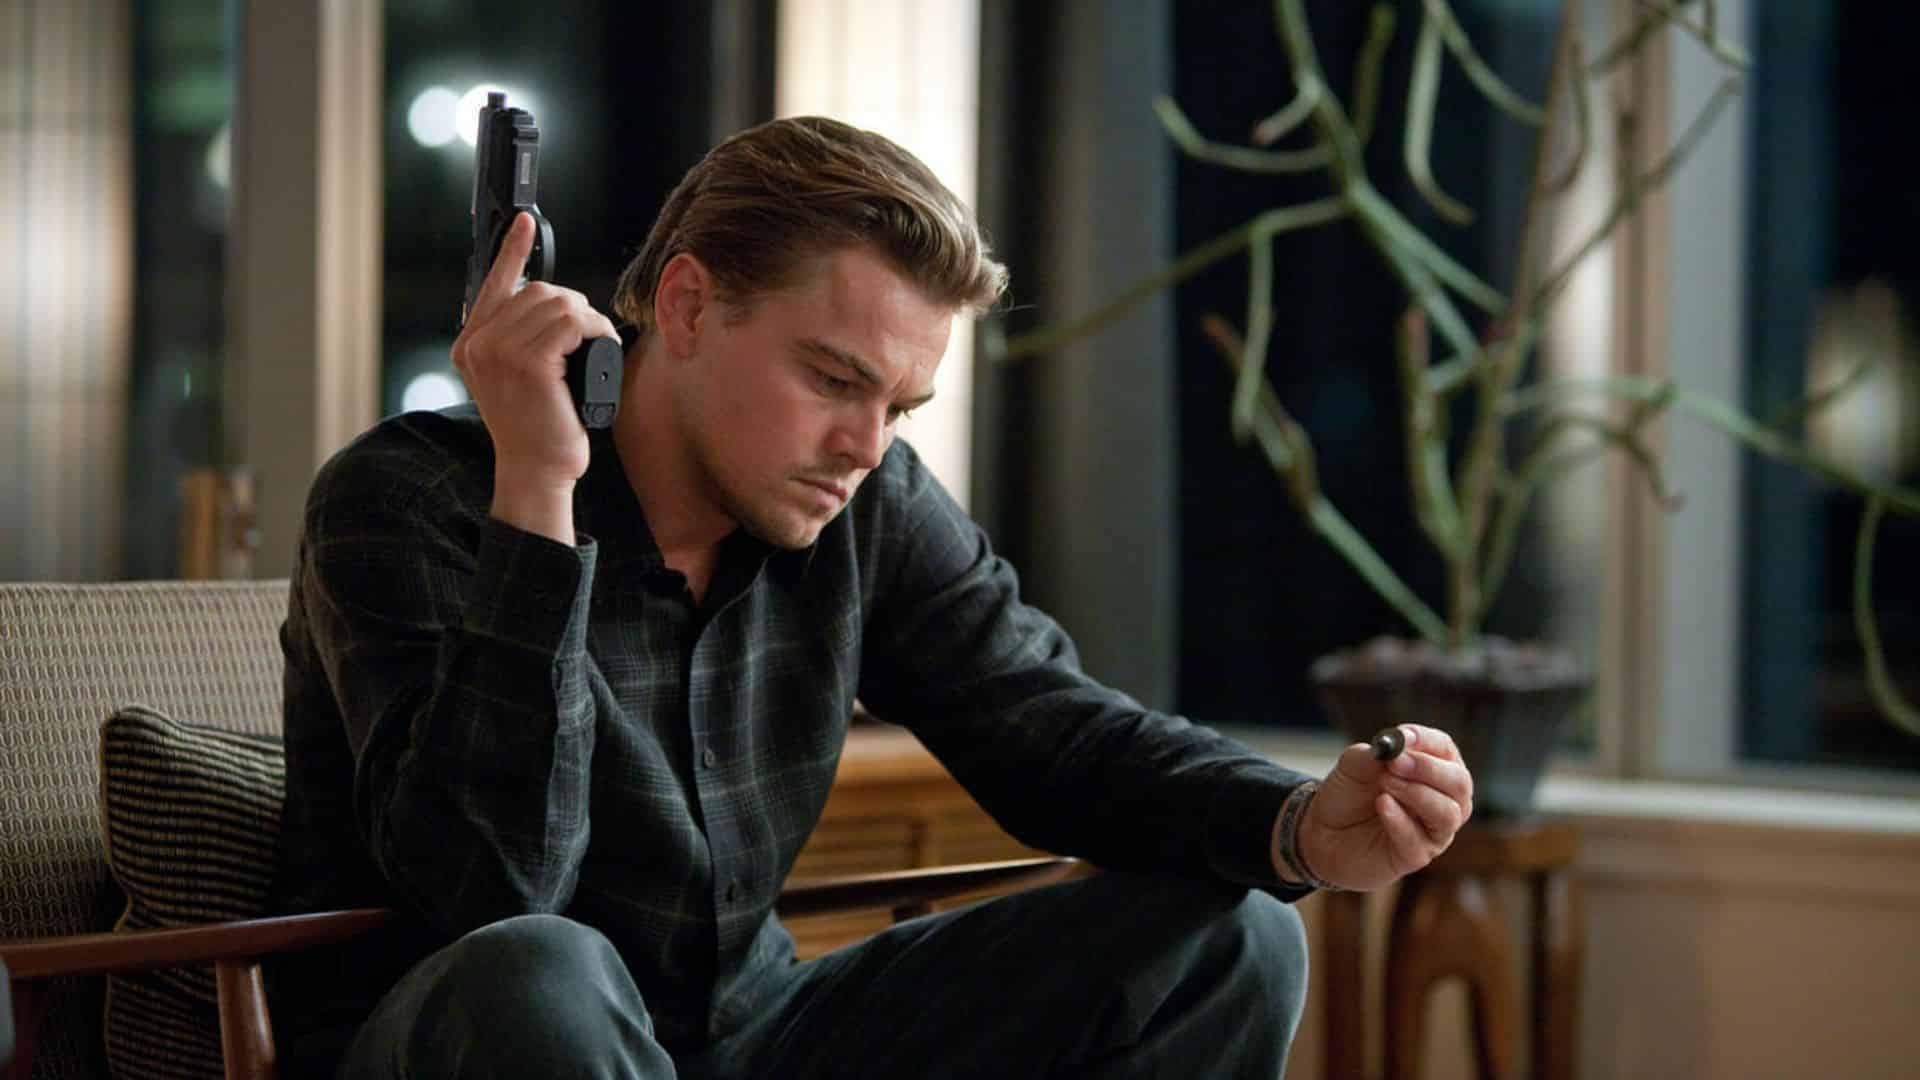 10 years later Inception is about movies but wary of movies, a Christopher Nolan film in-between Batman Dark Knight movies